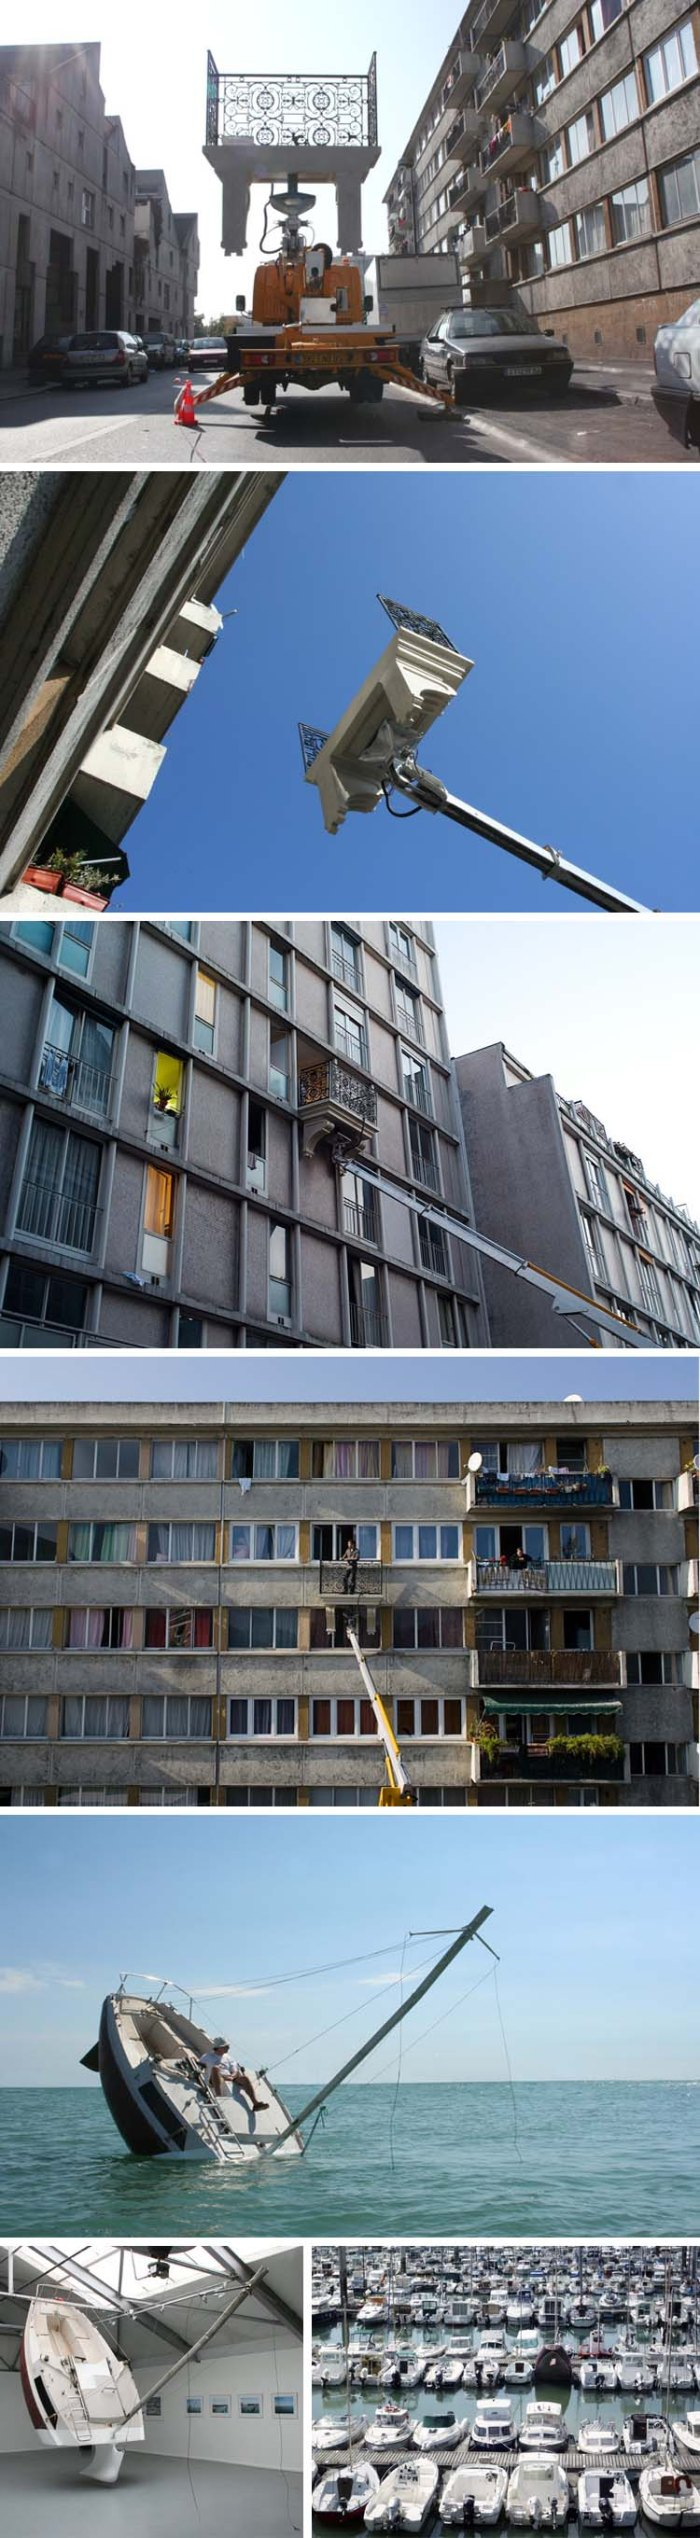 Humorous contemporary French sculpture and installation art. Balcony that attaches to all facades with boom. Street art. Julien Berthier. Fun.